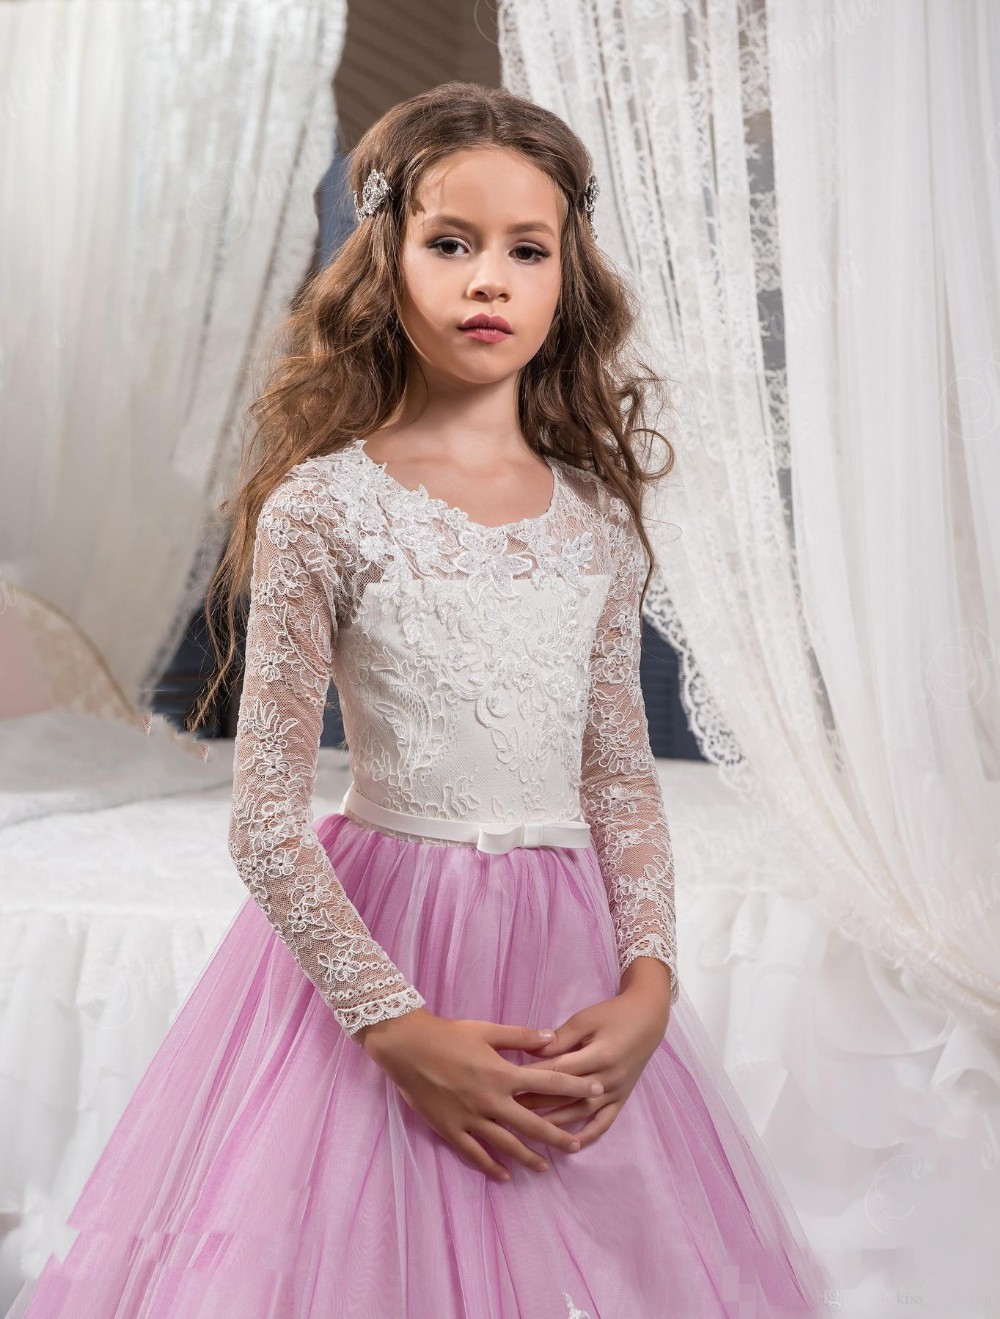 2017-Princess-Long-Sleeves-Lace-Flower-Girl-Dresses-2017-Vestidos-Puffy-Pink-Kids-Evening-Ball-Gown (2)